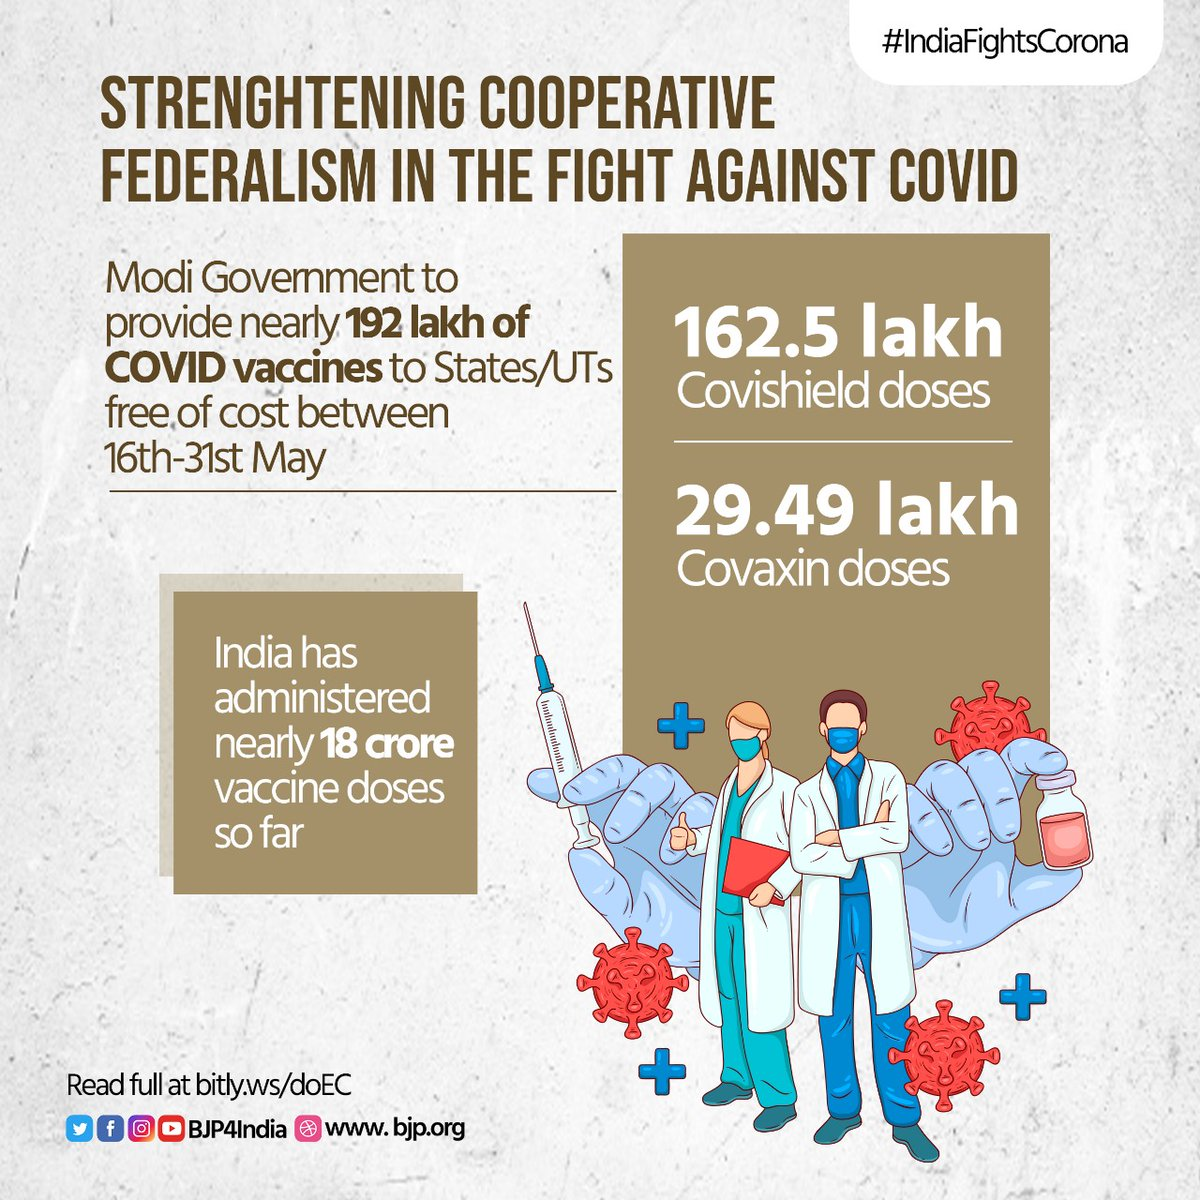 Strengthening cooperative federalism in the fight against COVID-19.  Modi govt to provide nearly 192 lakh of COVID vaccines to States/UTs free of cost between 16th-31st May.  So far, India has administered nearly 18 crore vaccine doses.  #IndiaFightsCorona